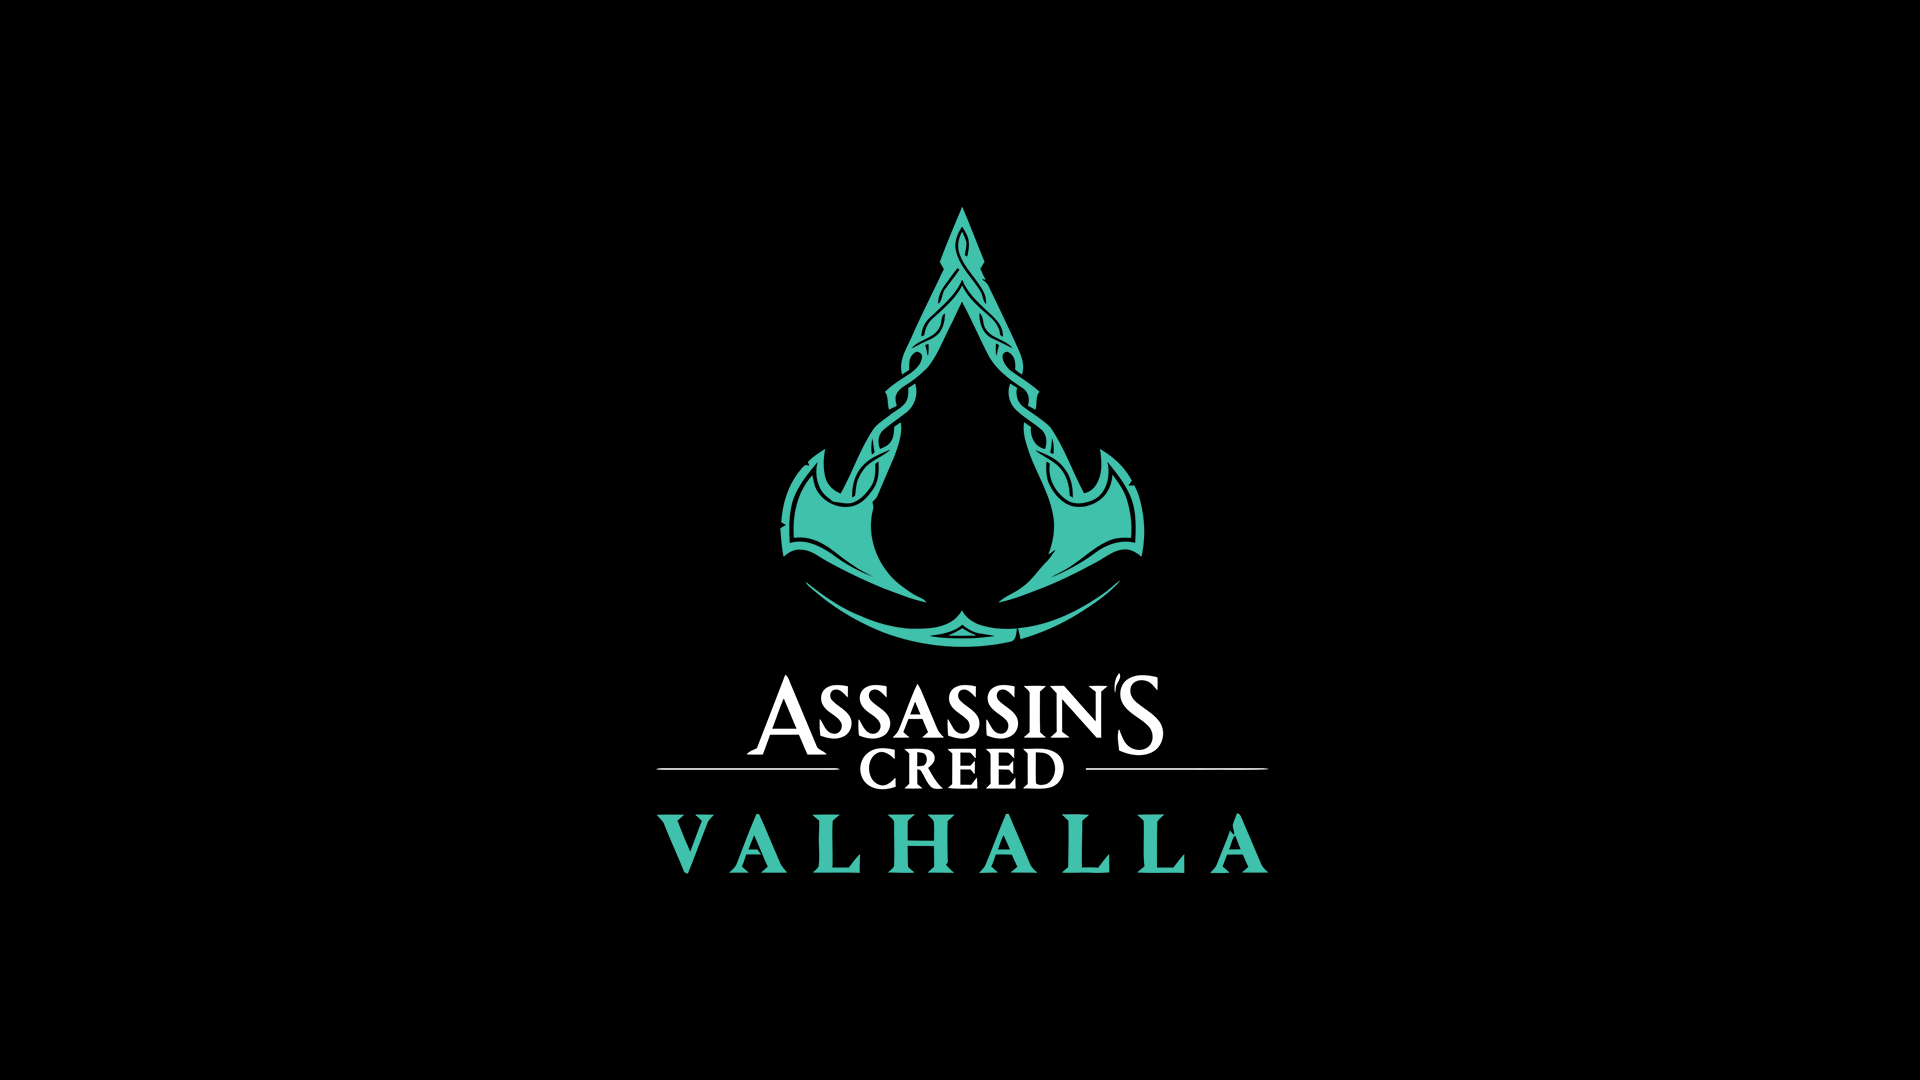 Trofeos de Assassin's Creed Valhalla